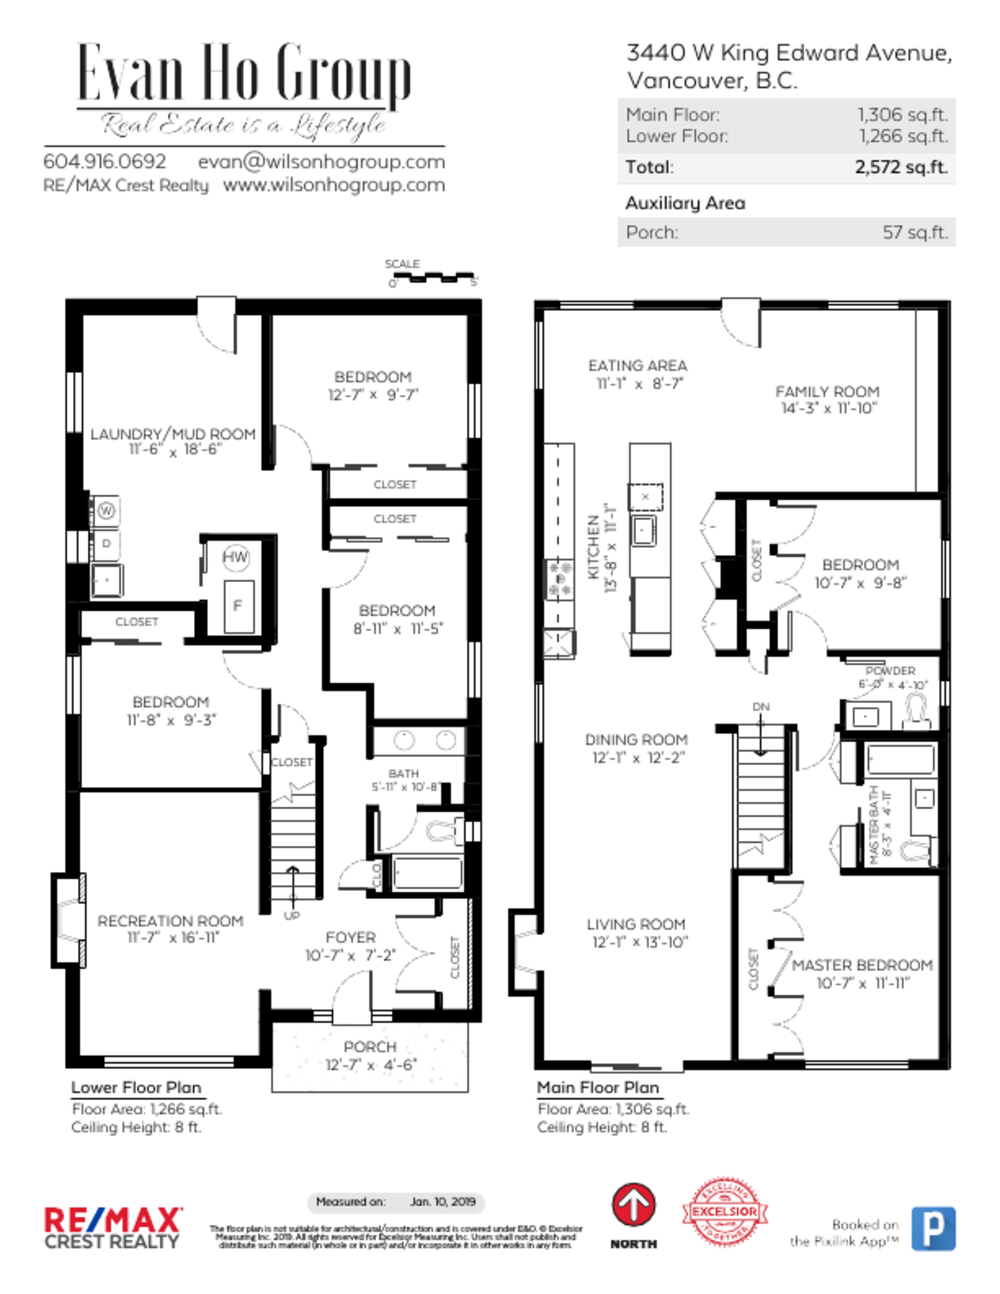 Floor Plan for a 5 Bedroom House in Vancouver